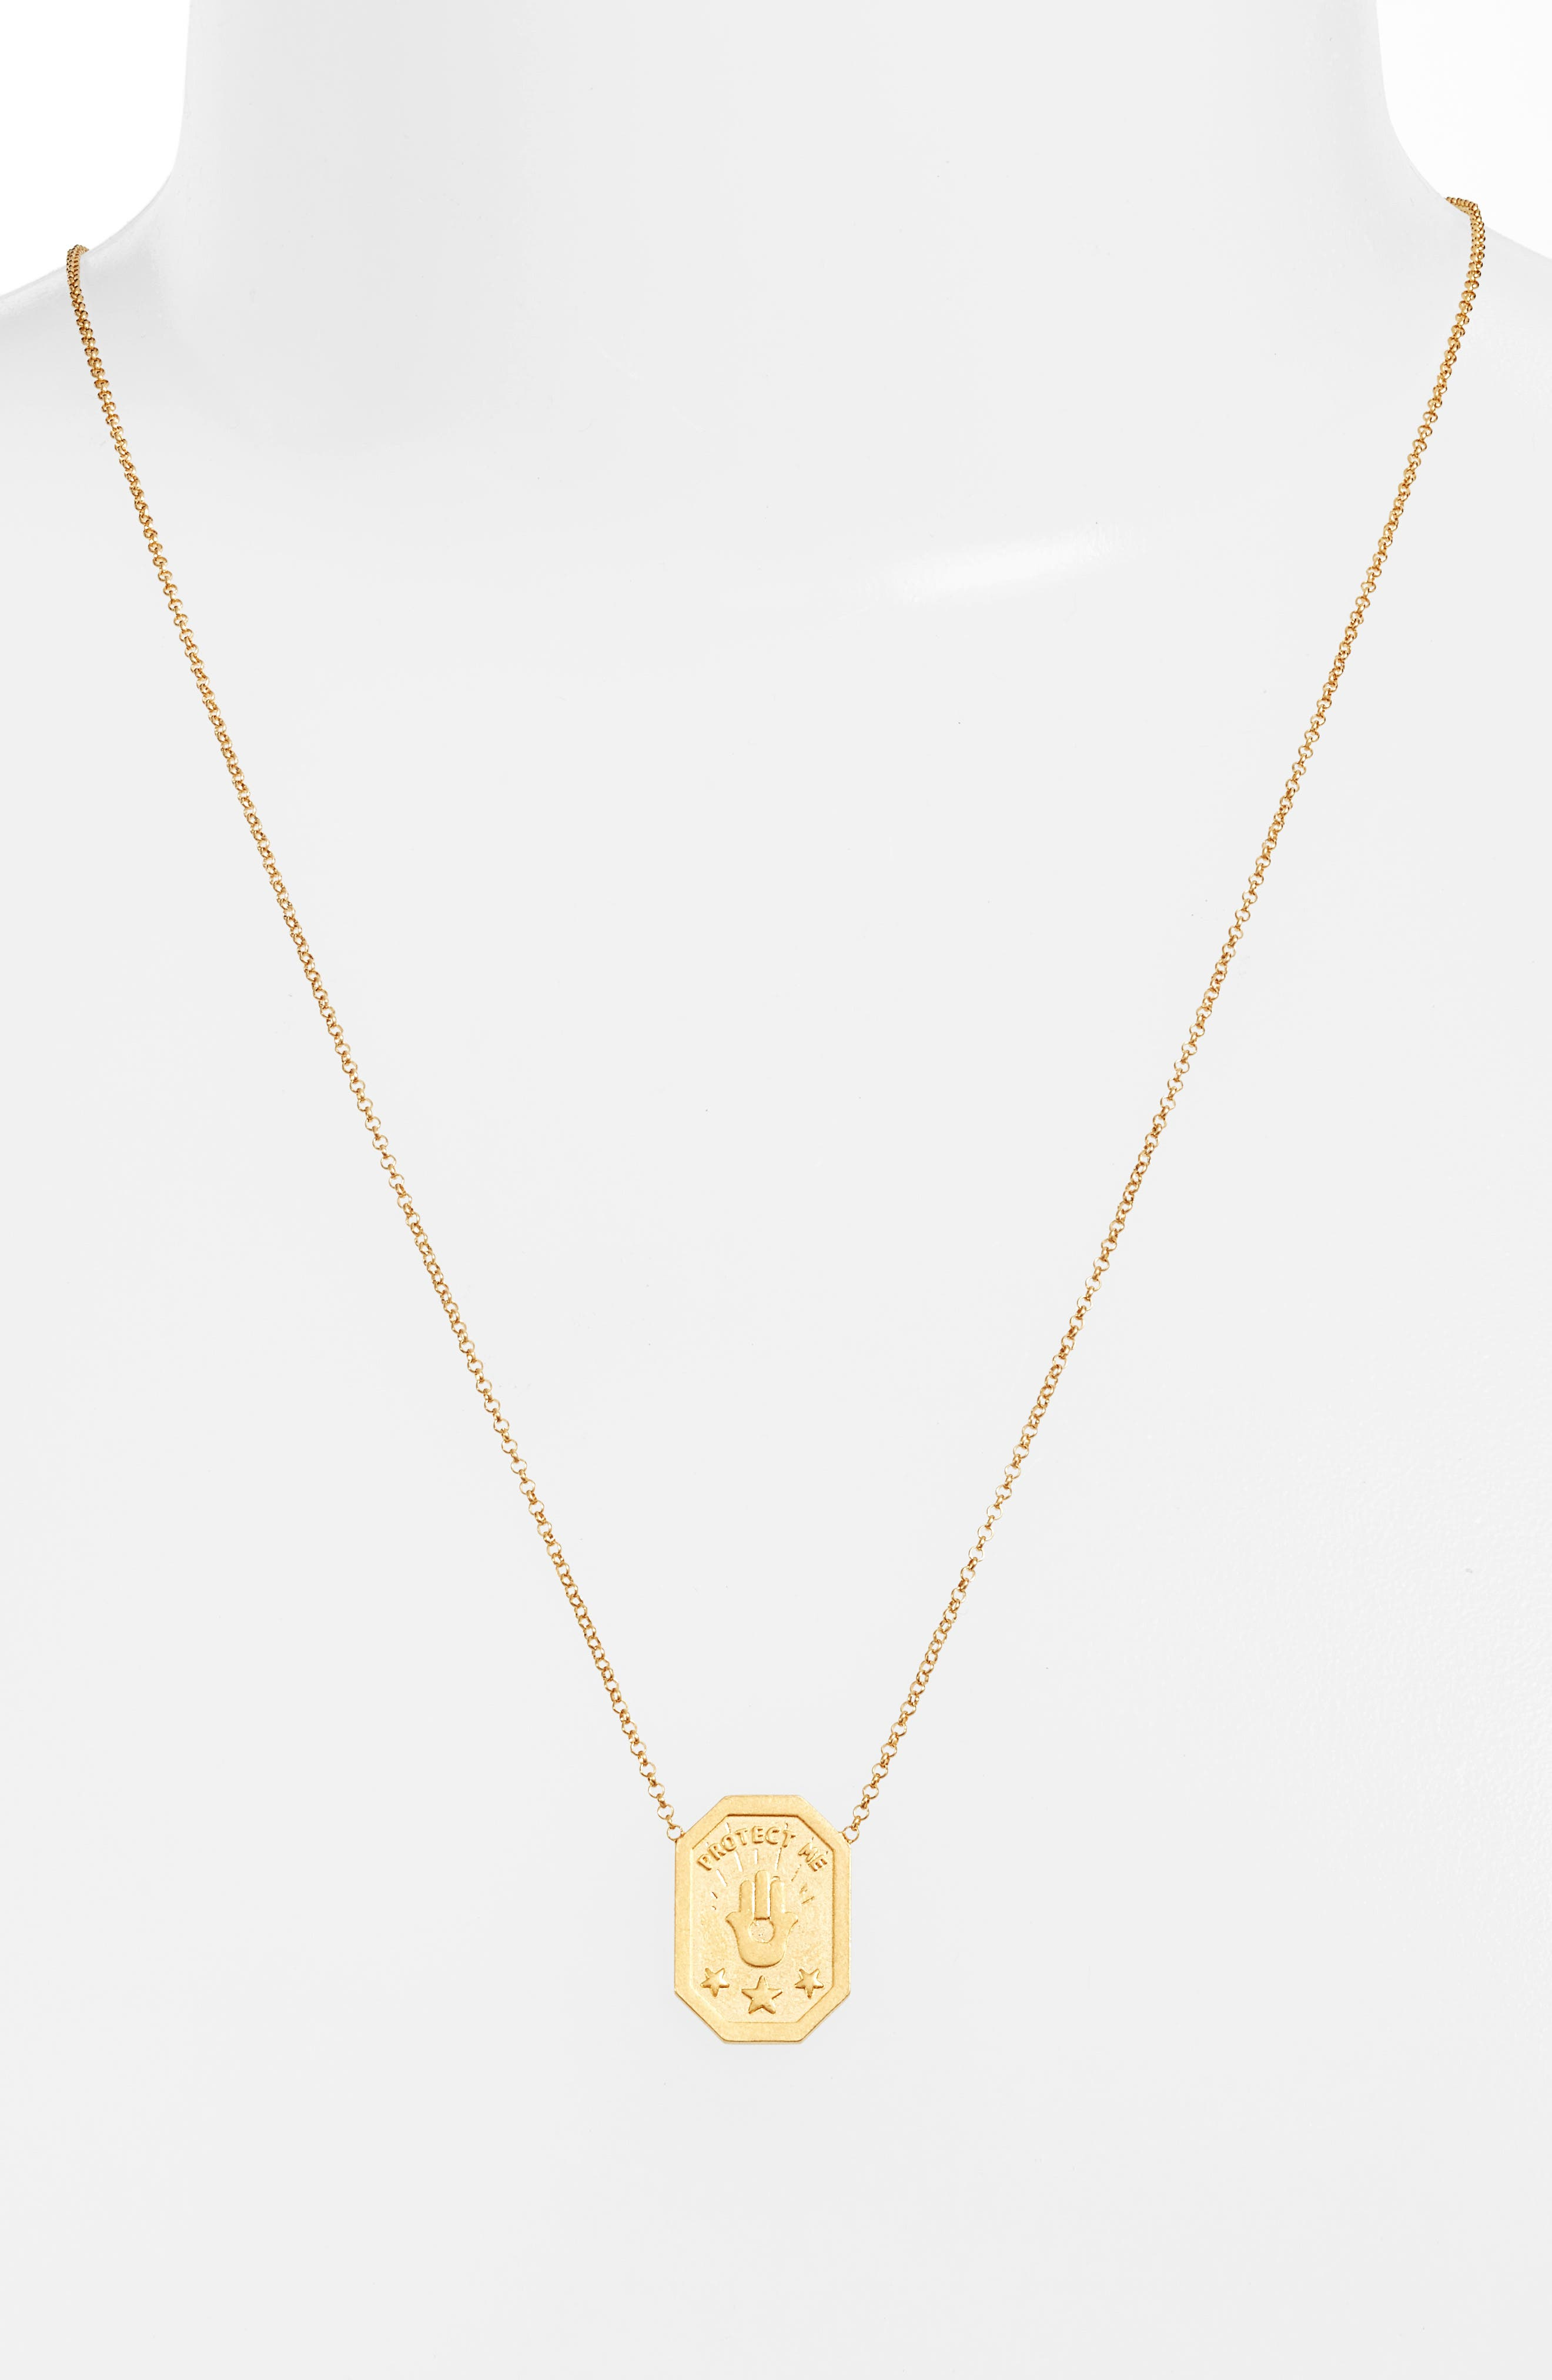 Protect My Heart, Watch My Back Scapular Two-Way Necklace,                             Alternate thumbnail 2, color,                             Gold